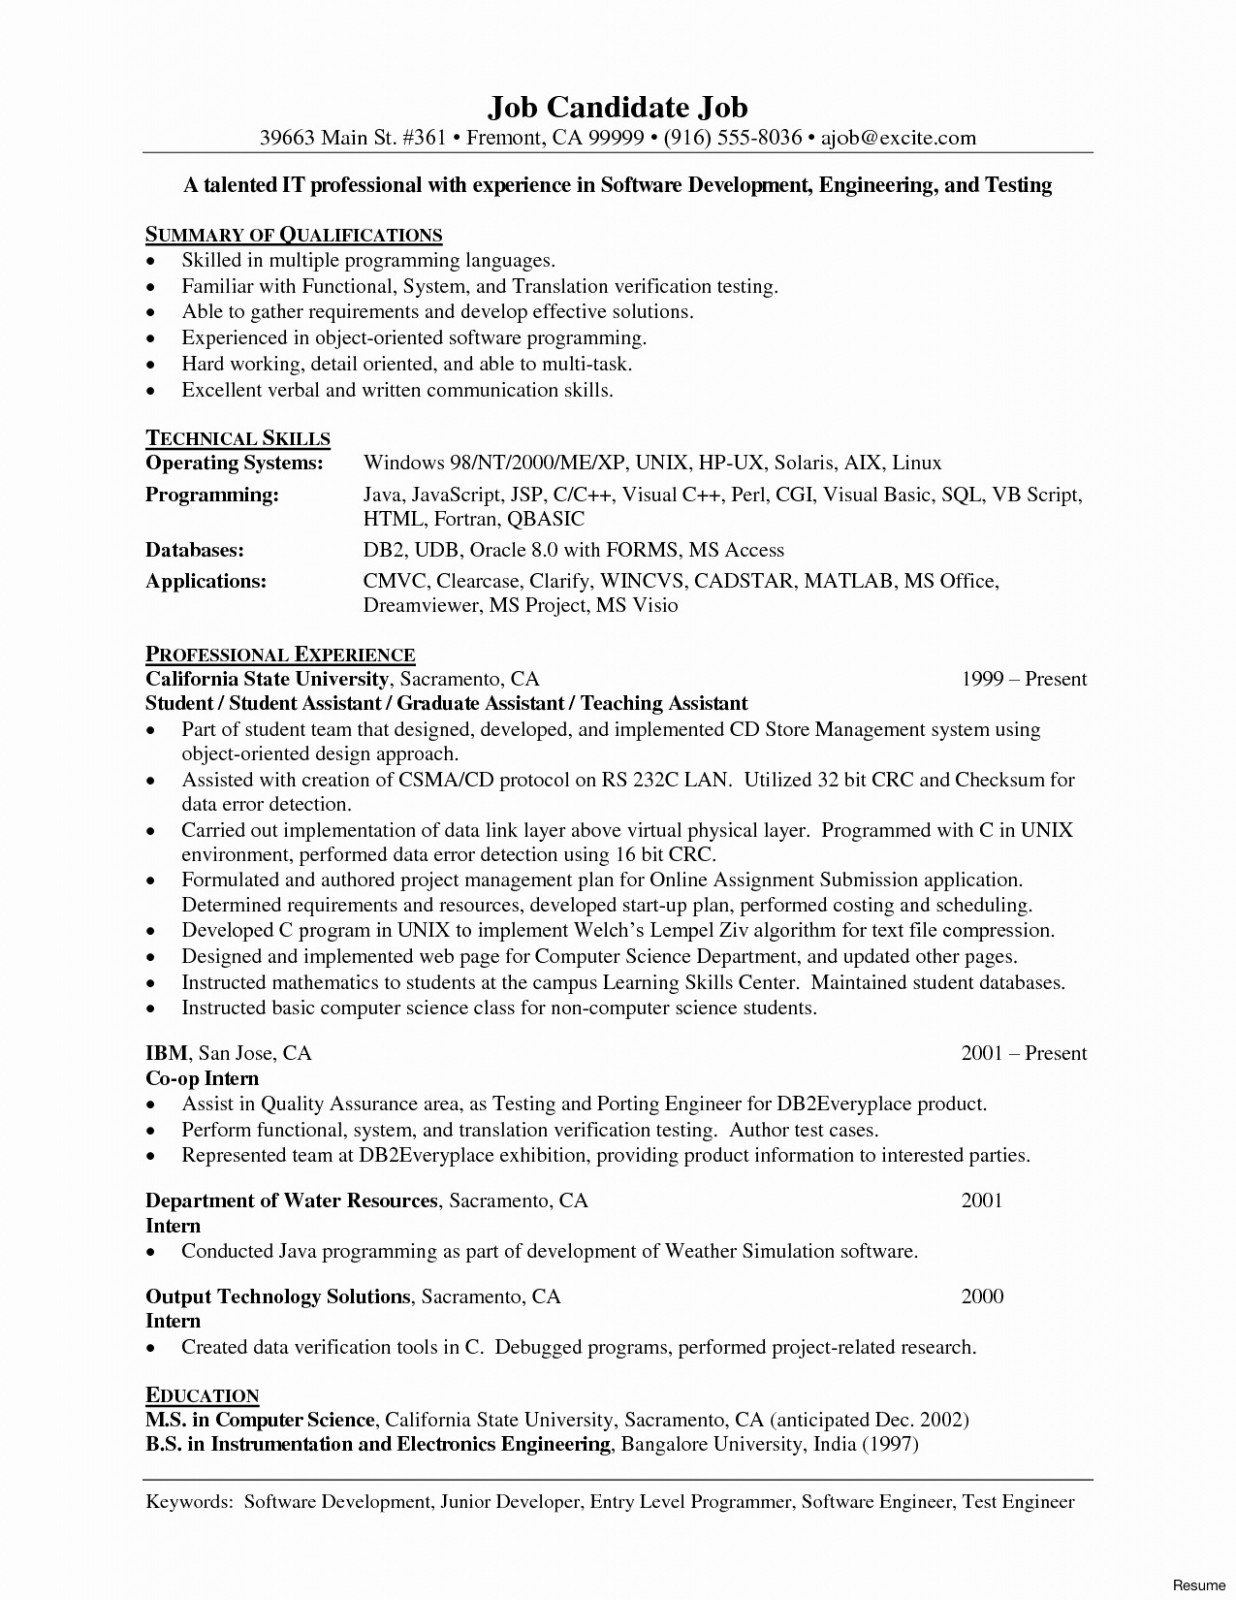 computer engineering resume template Collection-puter Engineering Resume Awesome Programmer Resume Template Lovely Ssis Resume 0d Aurelianmg puter Engineering Resume 20-a